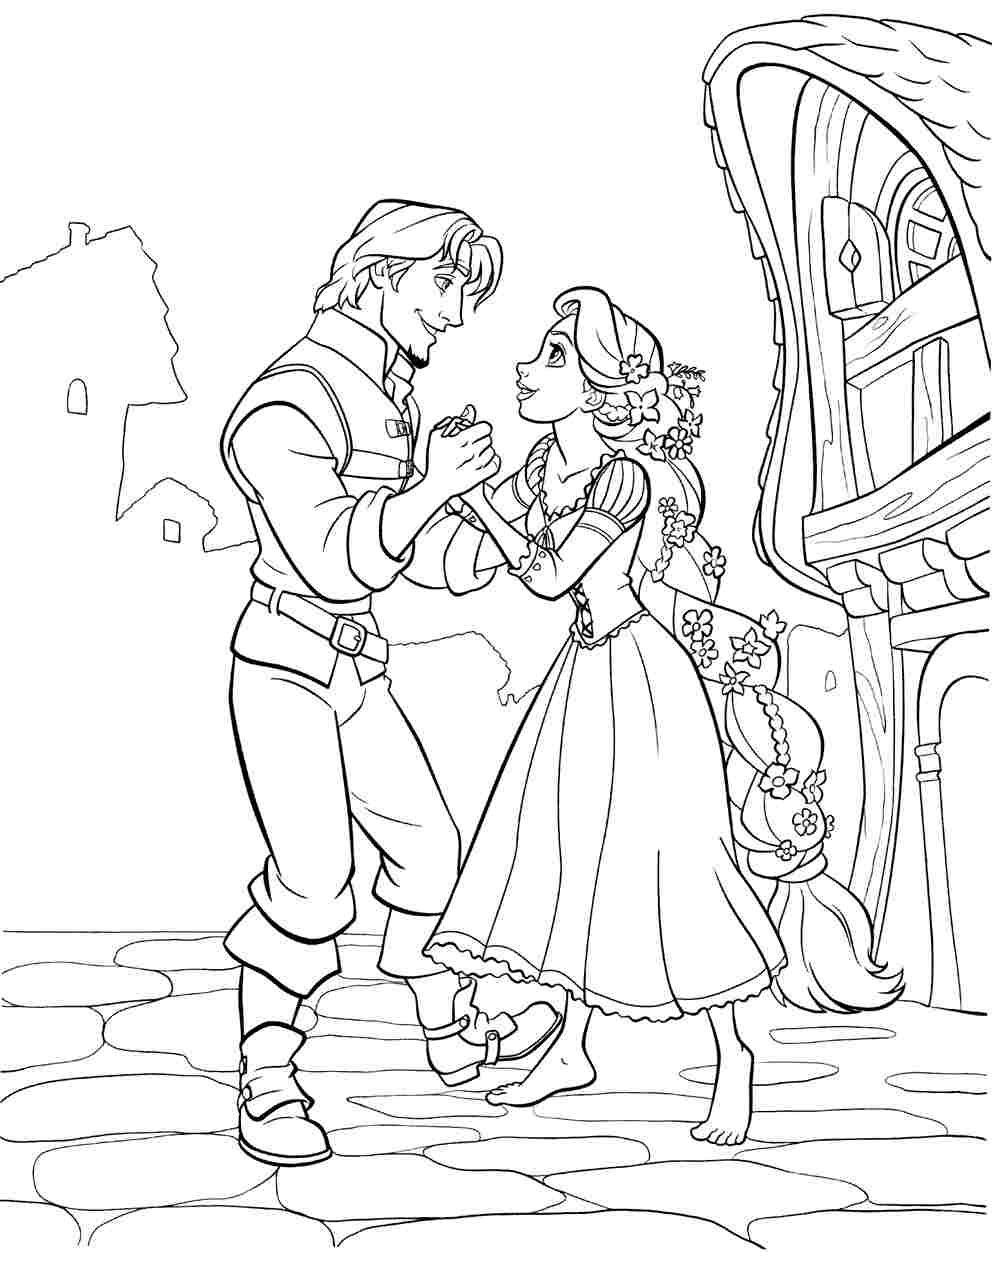 Rapunzel Pascal Ausmalbilder : Disney Princess Tangled Rapunzel Coloring Sheets Free Printable For